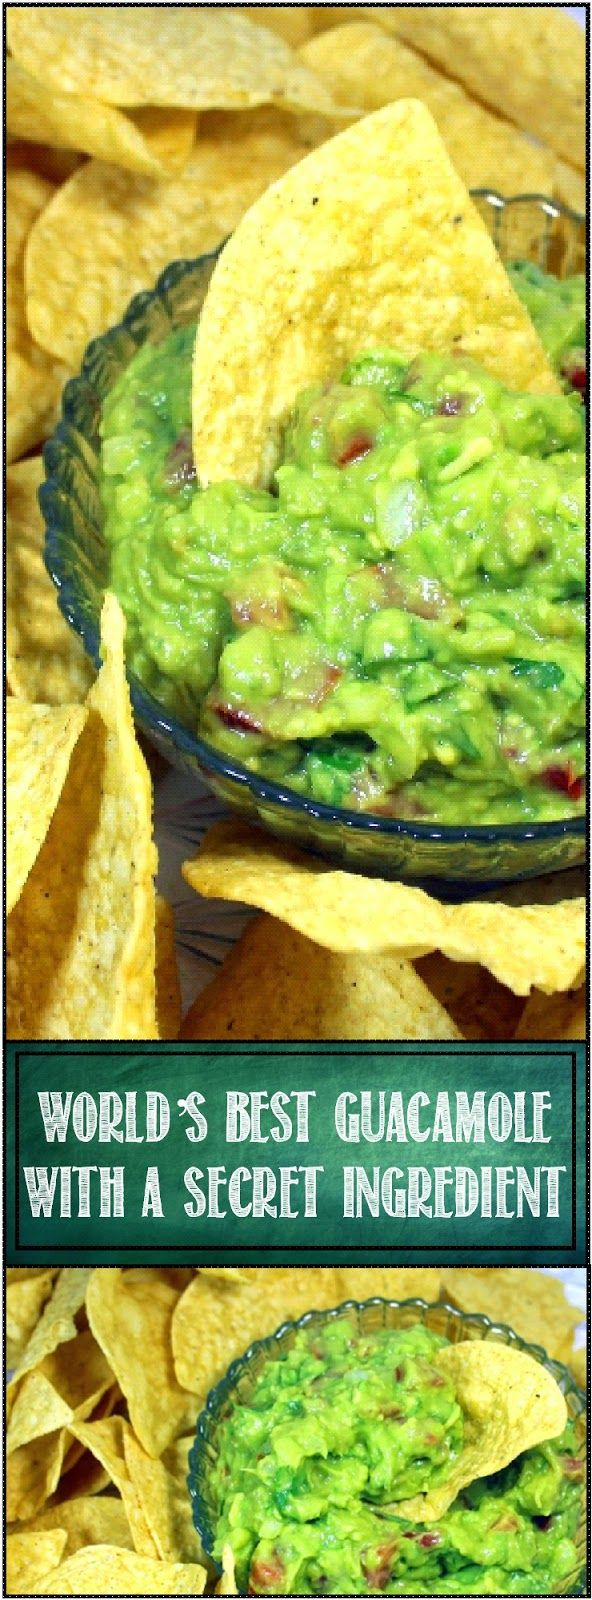 World's best Guacamole with a Secret Ingredient. There are plenty of hints and tips for the technique of making fresh made guacamole. Always a crowd pleaser and welcome bring along dish for any PotLuck or big gathering. This is an incredible recipe, combination of traditional ingredients with proper technique to bring out the most flavor. and a SECRET Ingredient. Shhhhh.